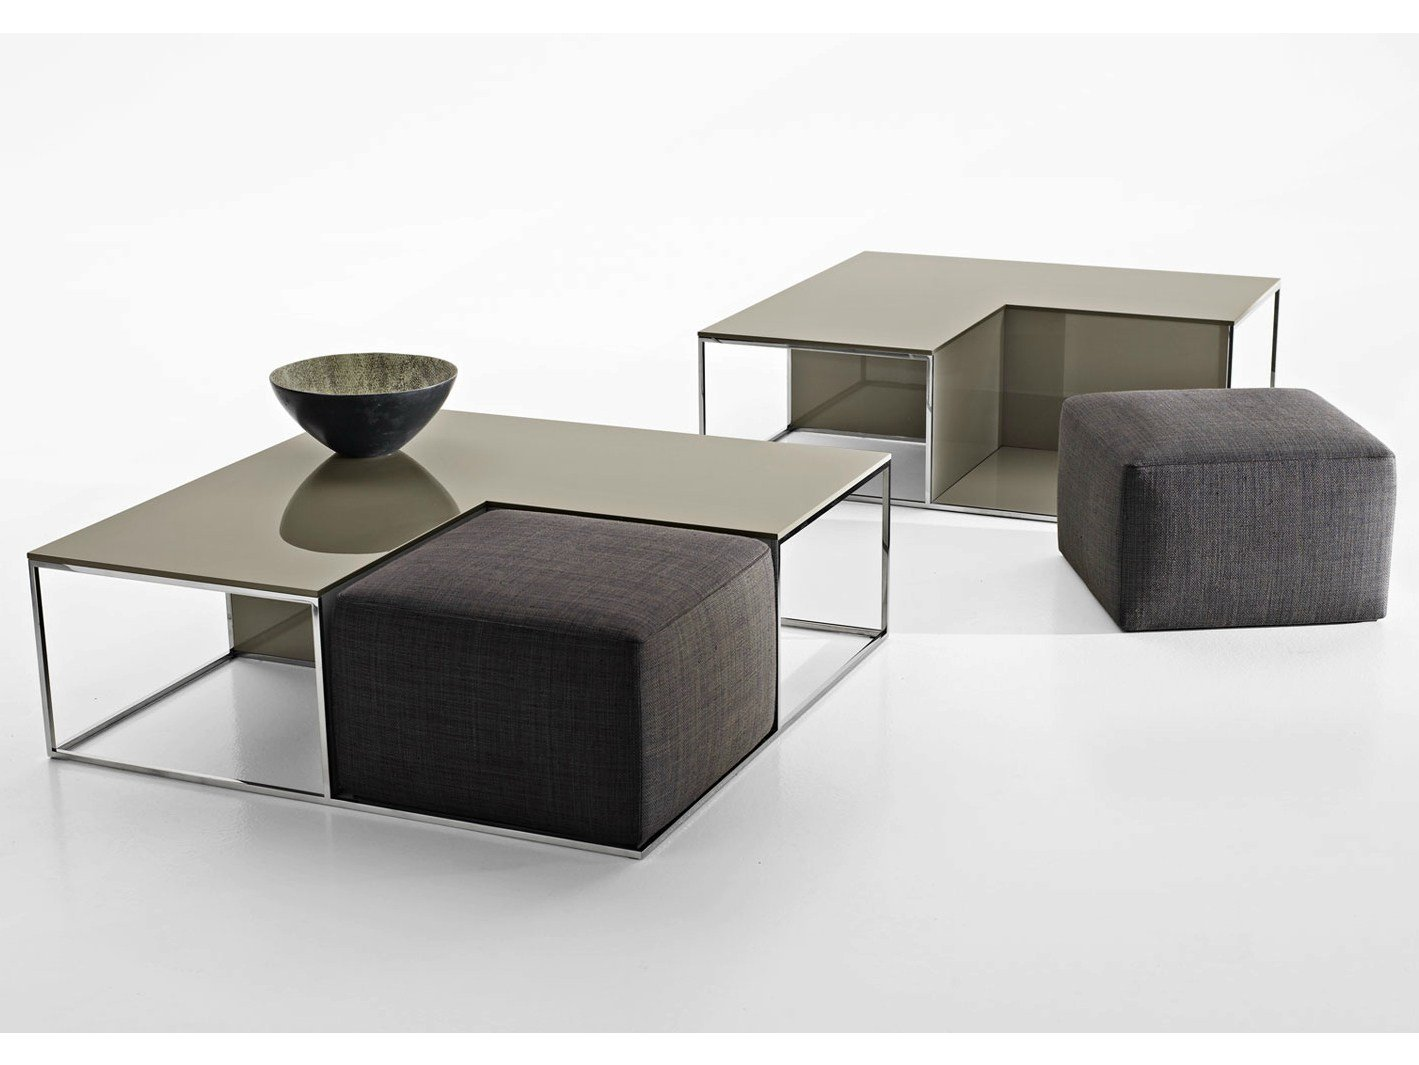 Pouf coffee table area by b b italia design paolo piva - Table en verre avec pouf ...